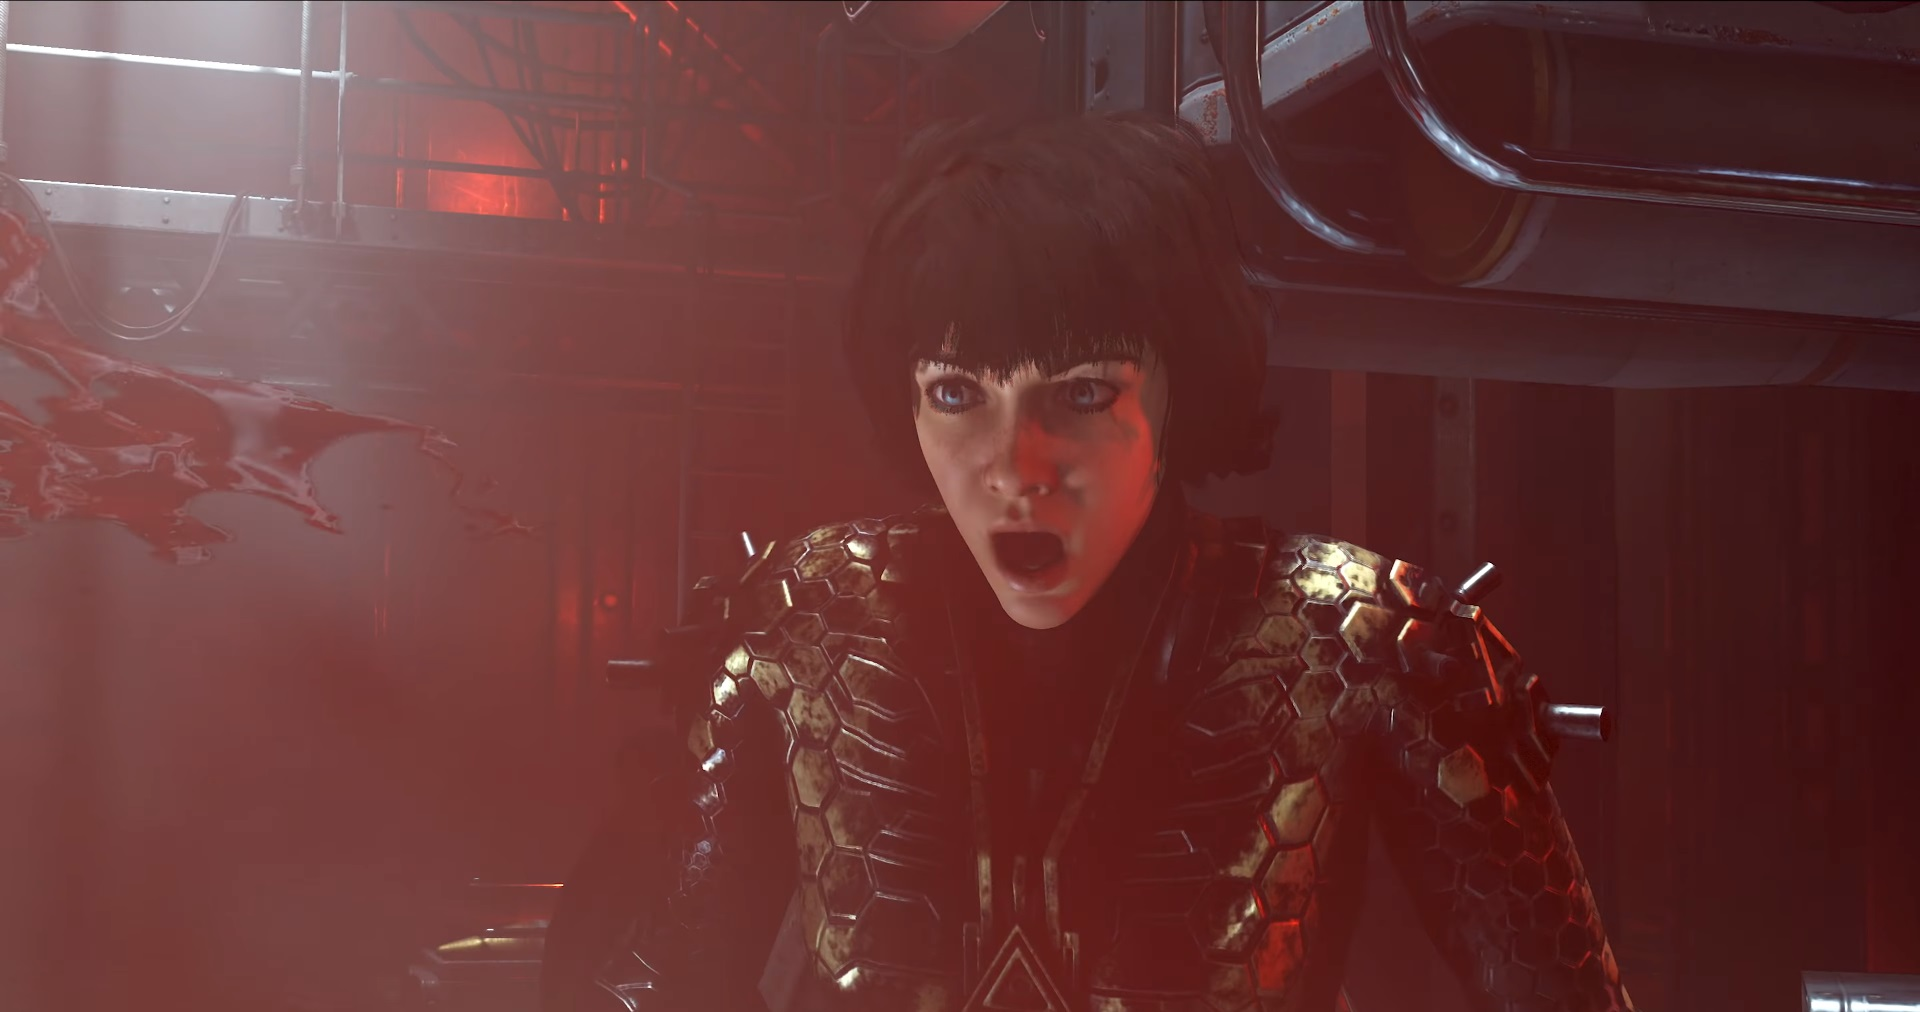 Wolfenstein: Youngblood will take advantage of RTX ray tracing